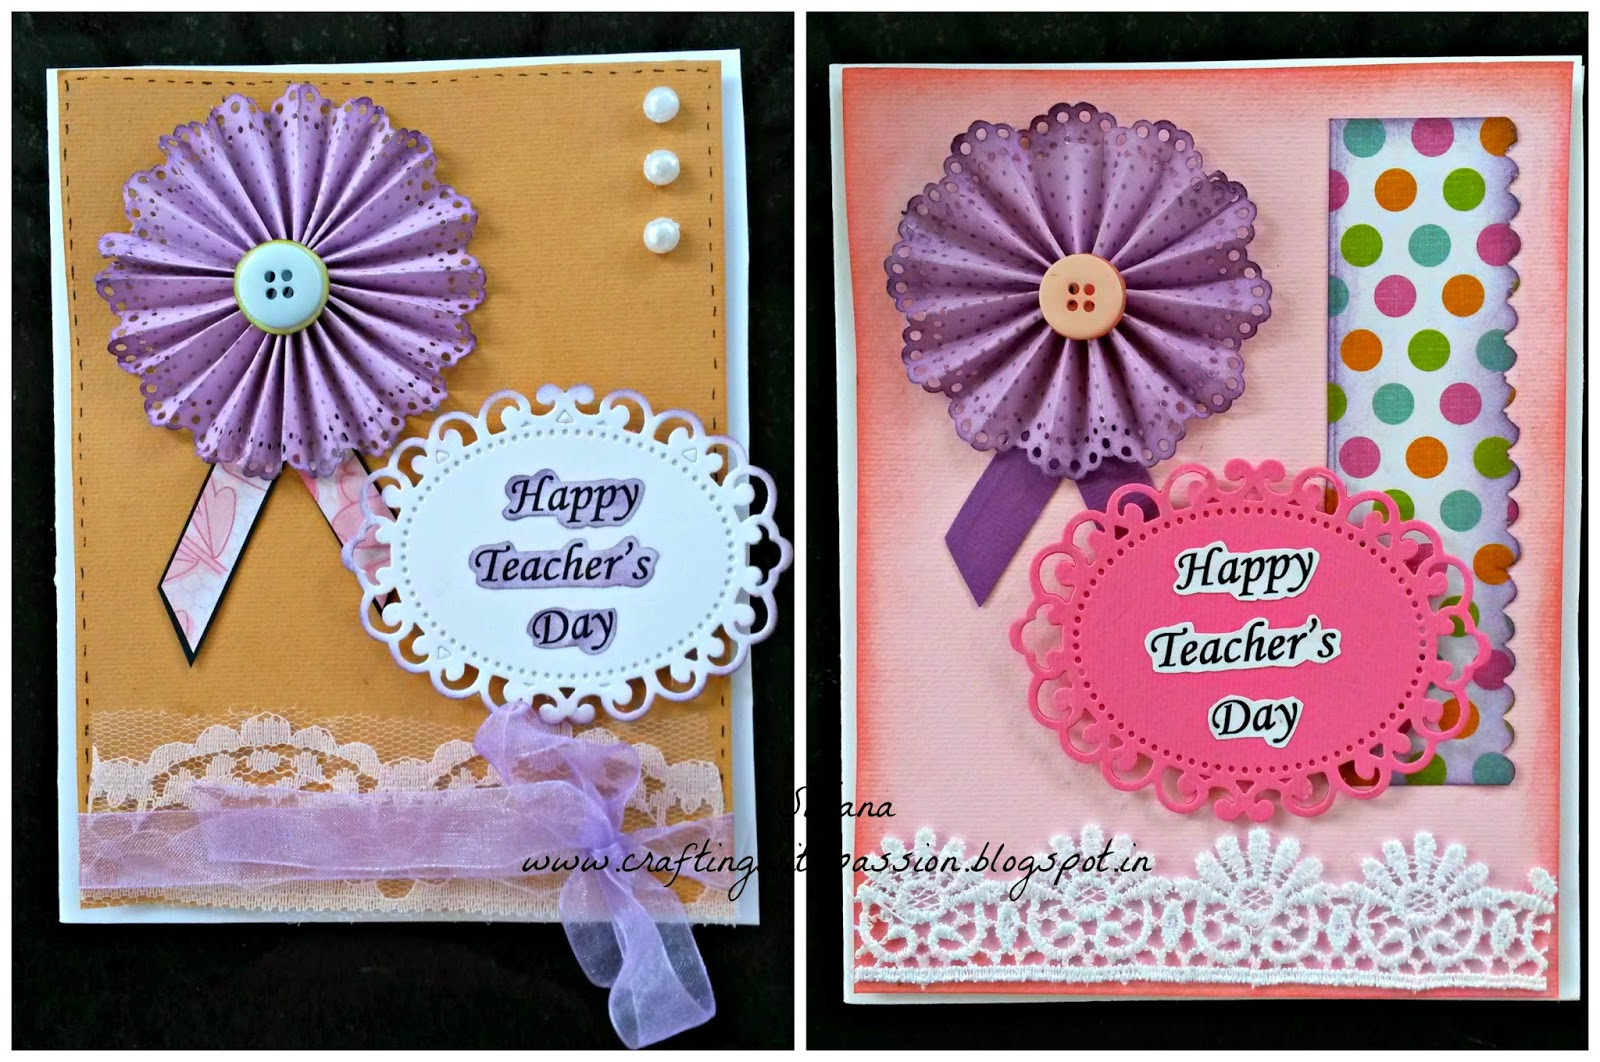 crafting with passion teachers' day cards